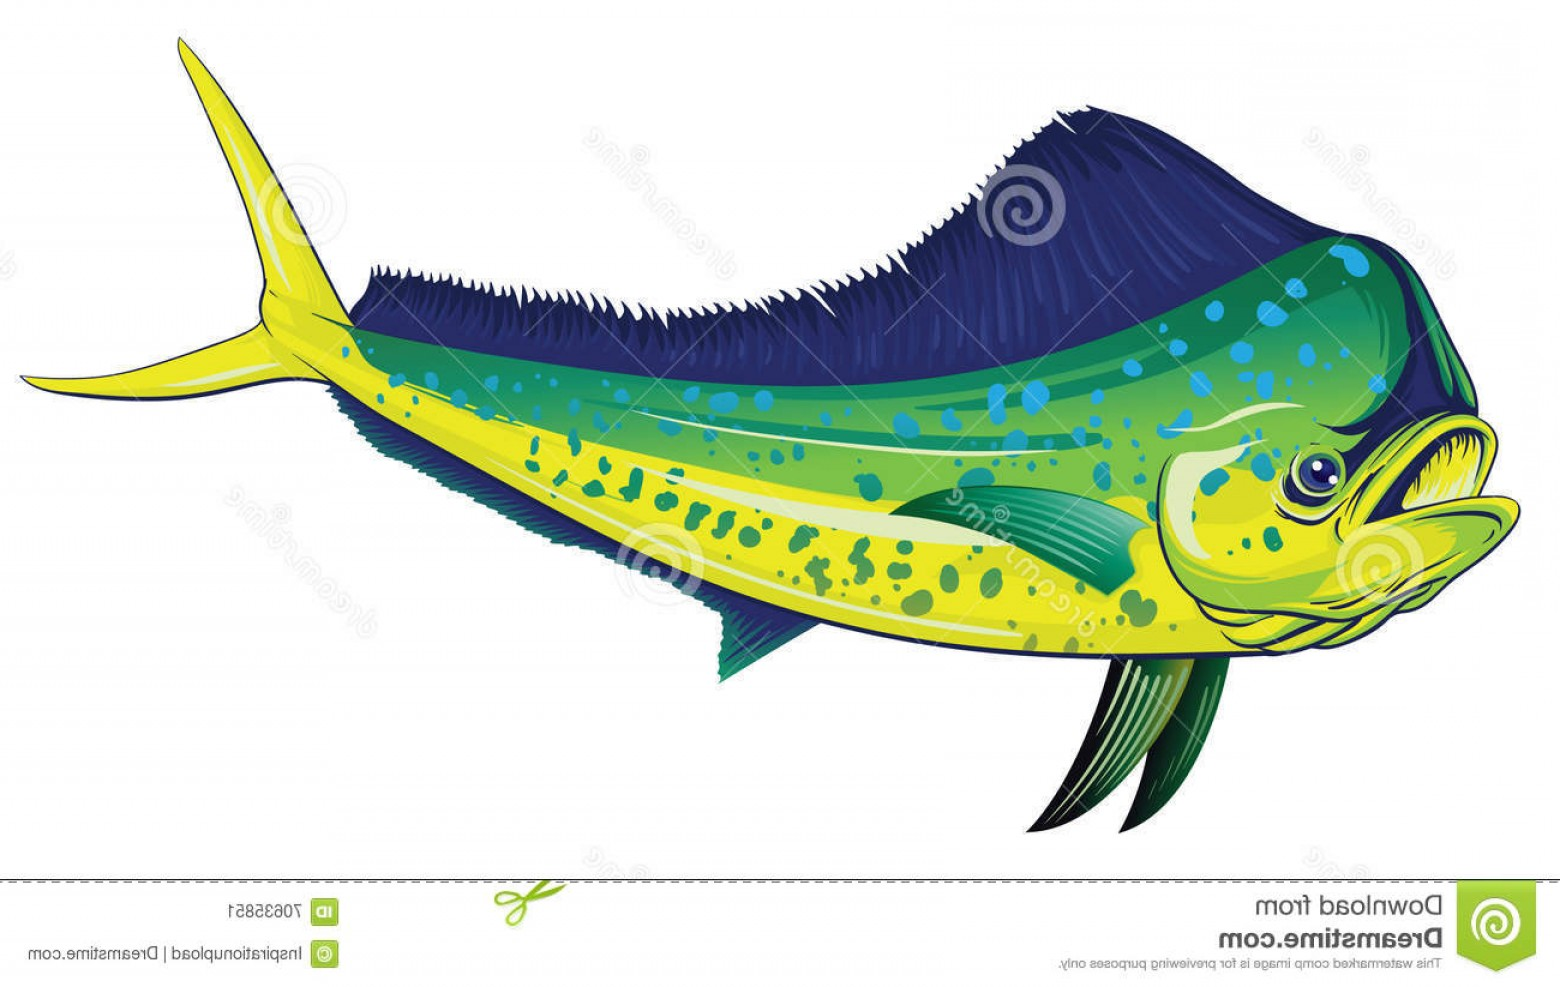 Mahi Mahi Outline Vector Images: Stock Illustration Mahi Mahi Vector Detailed Illustration Full Color Vector File Layered Easy Customization Image